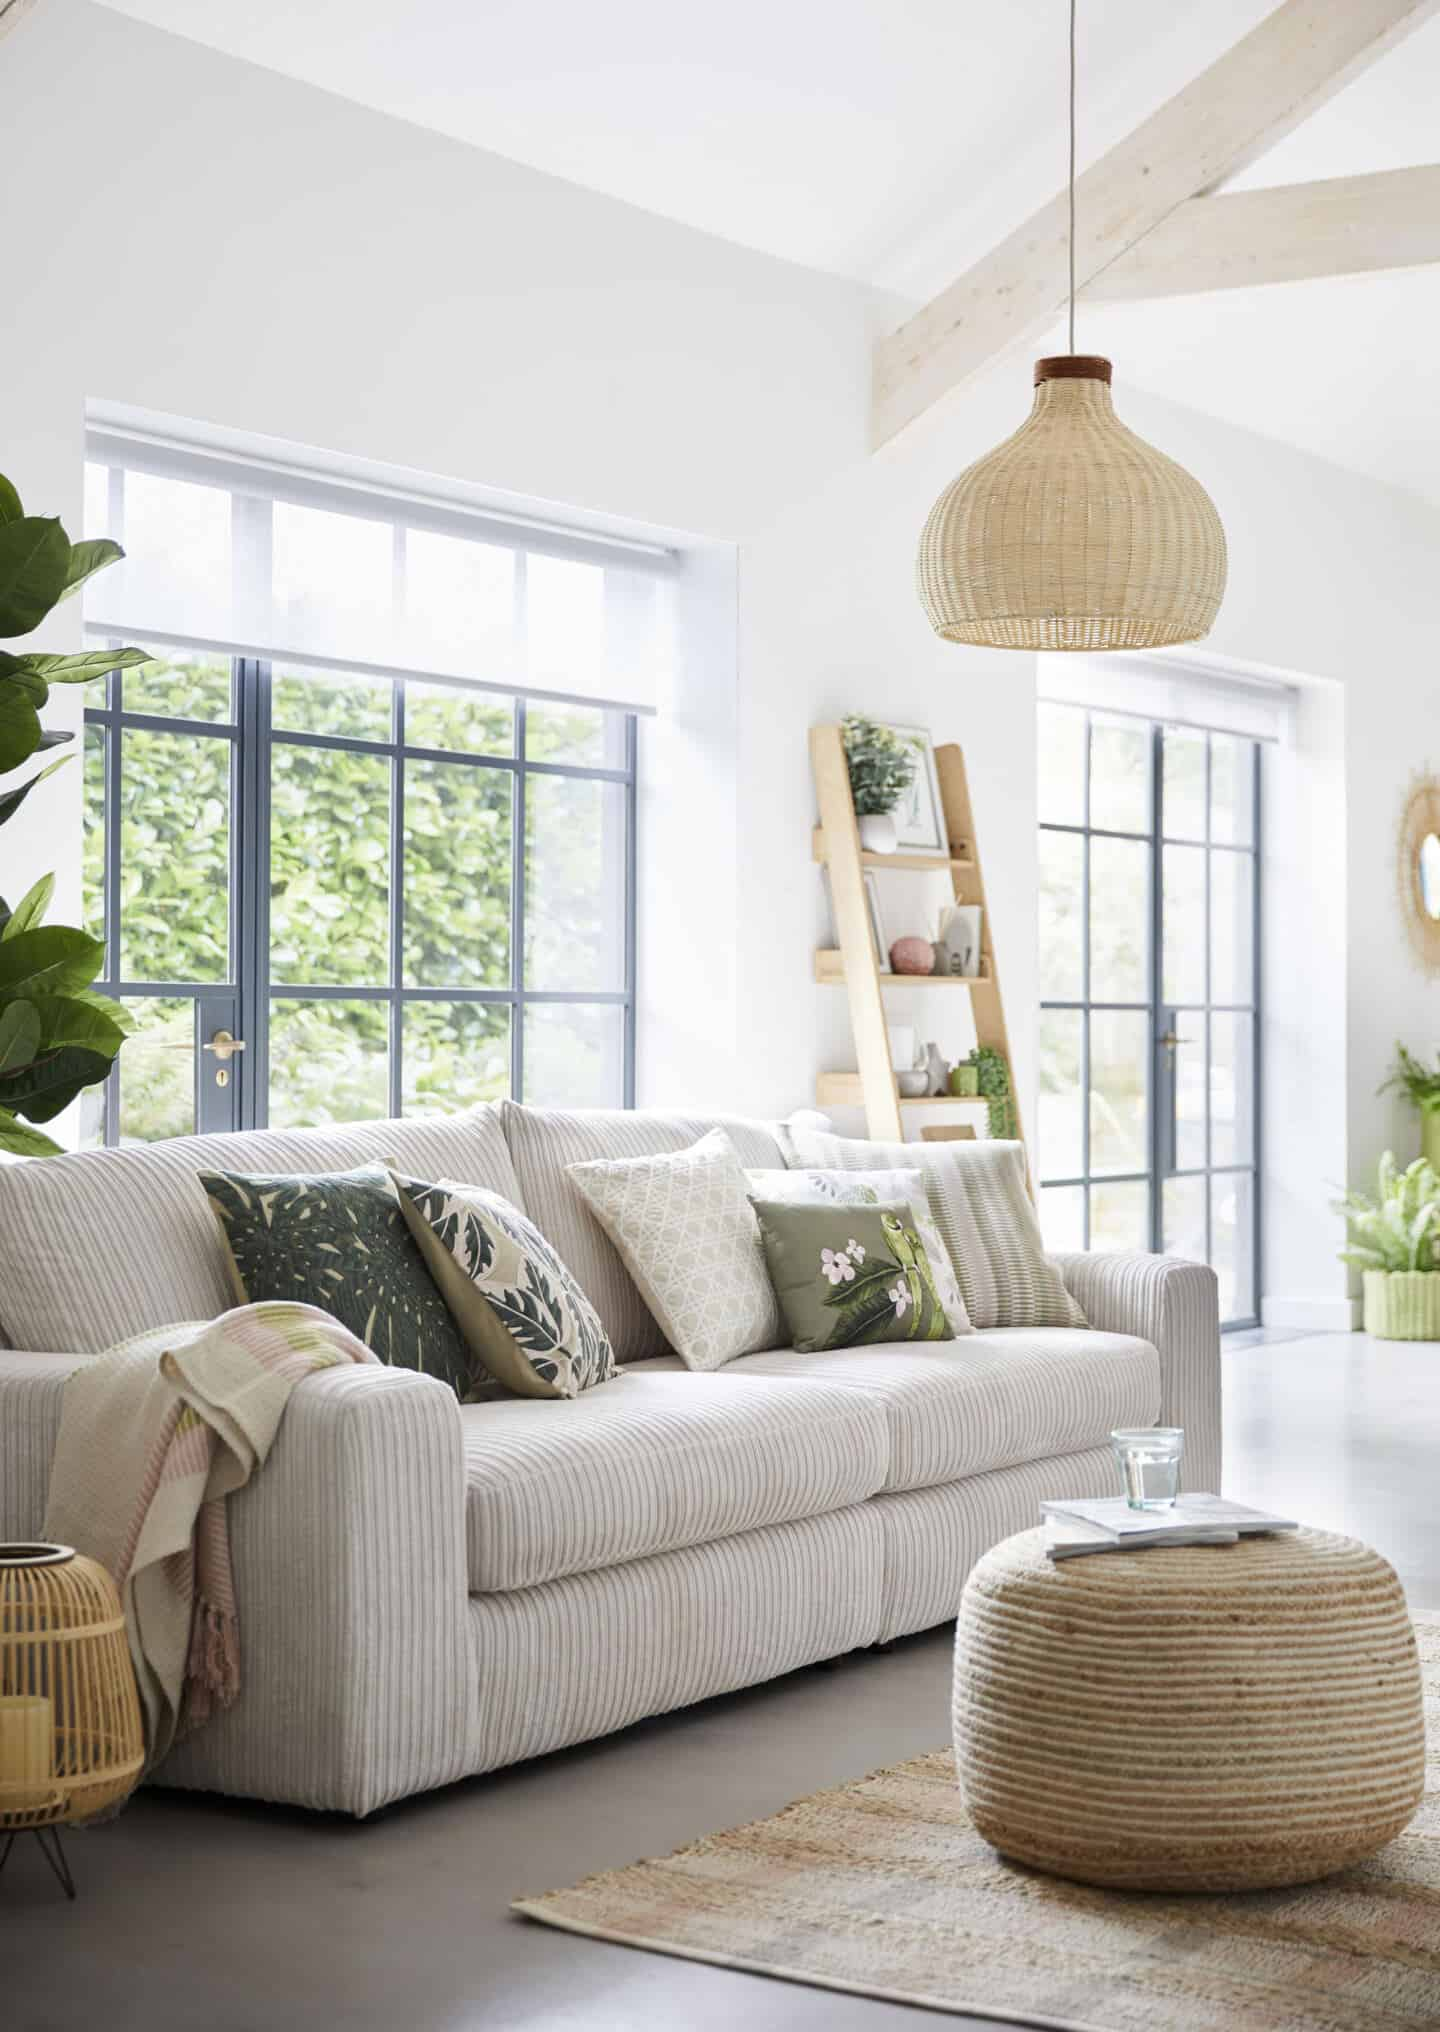 Sancturary is a SS20 interiors trend by Dunelm that features nature in interiors. This living room features lots of tactile textures, natural materials and leafy green prints.